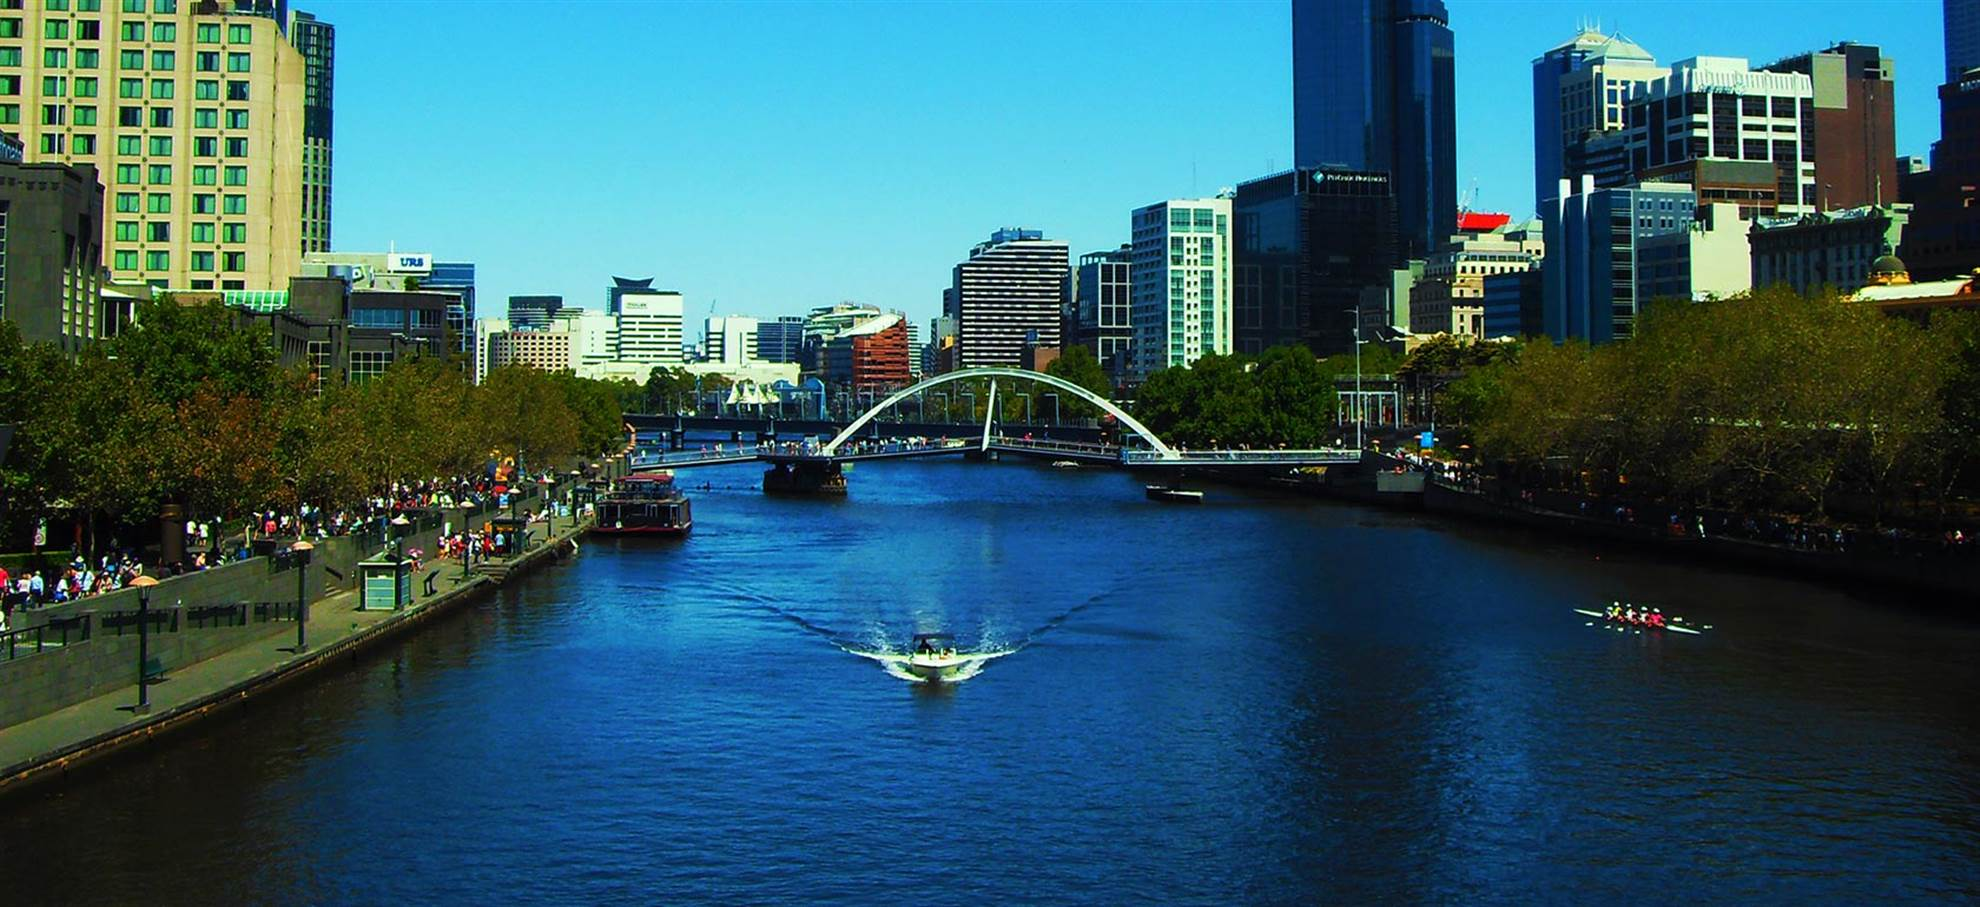 Morning Melbourne City Tour with River Cruise